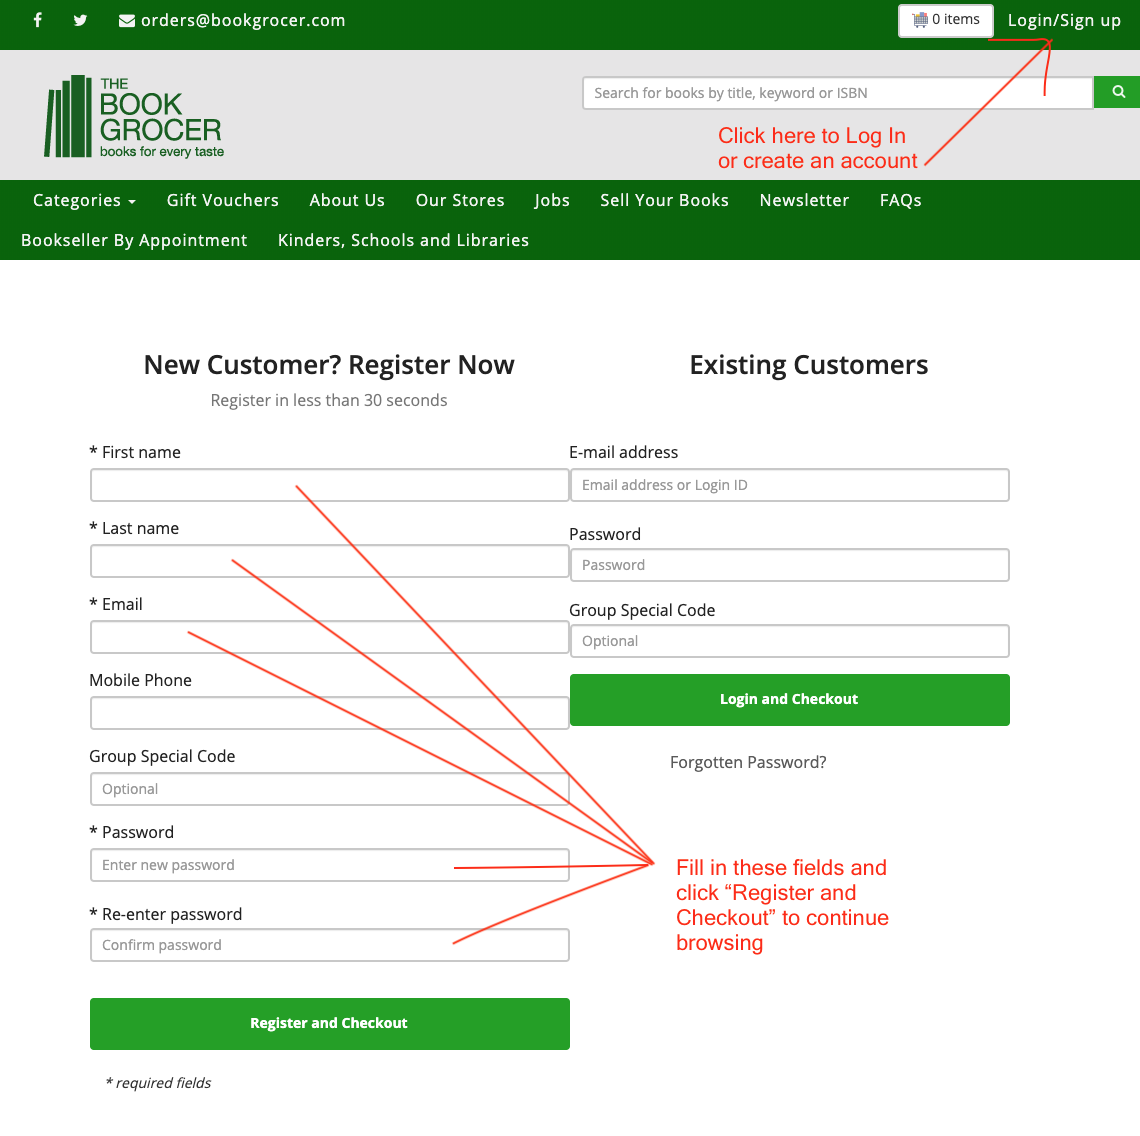 Image showing fields to fill in at registration